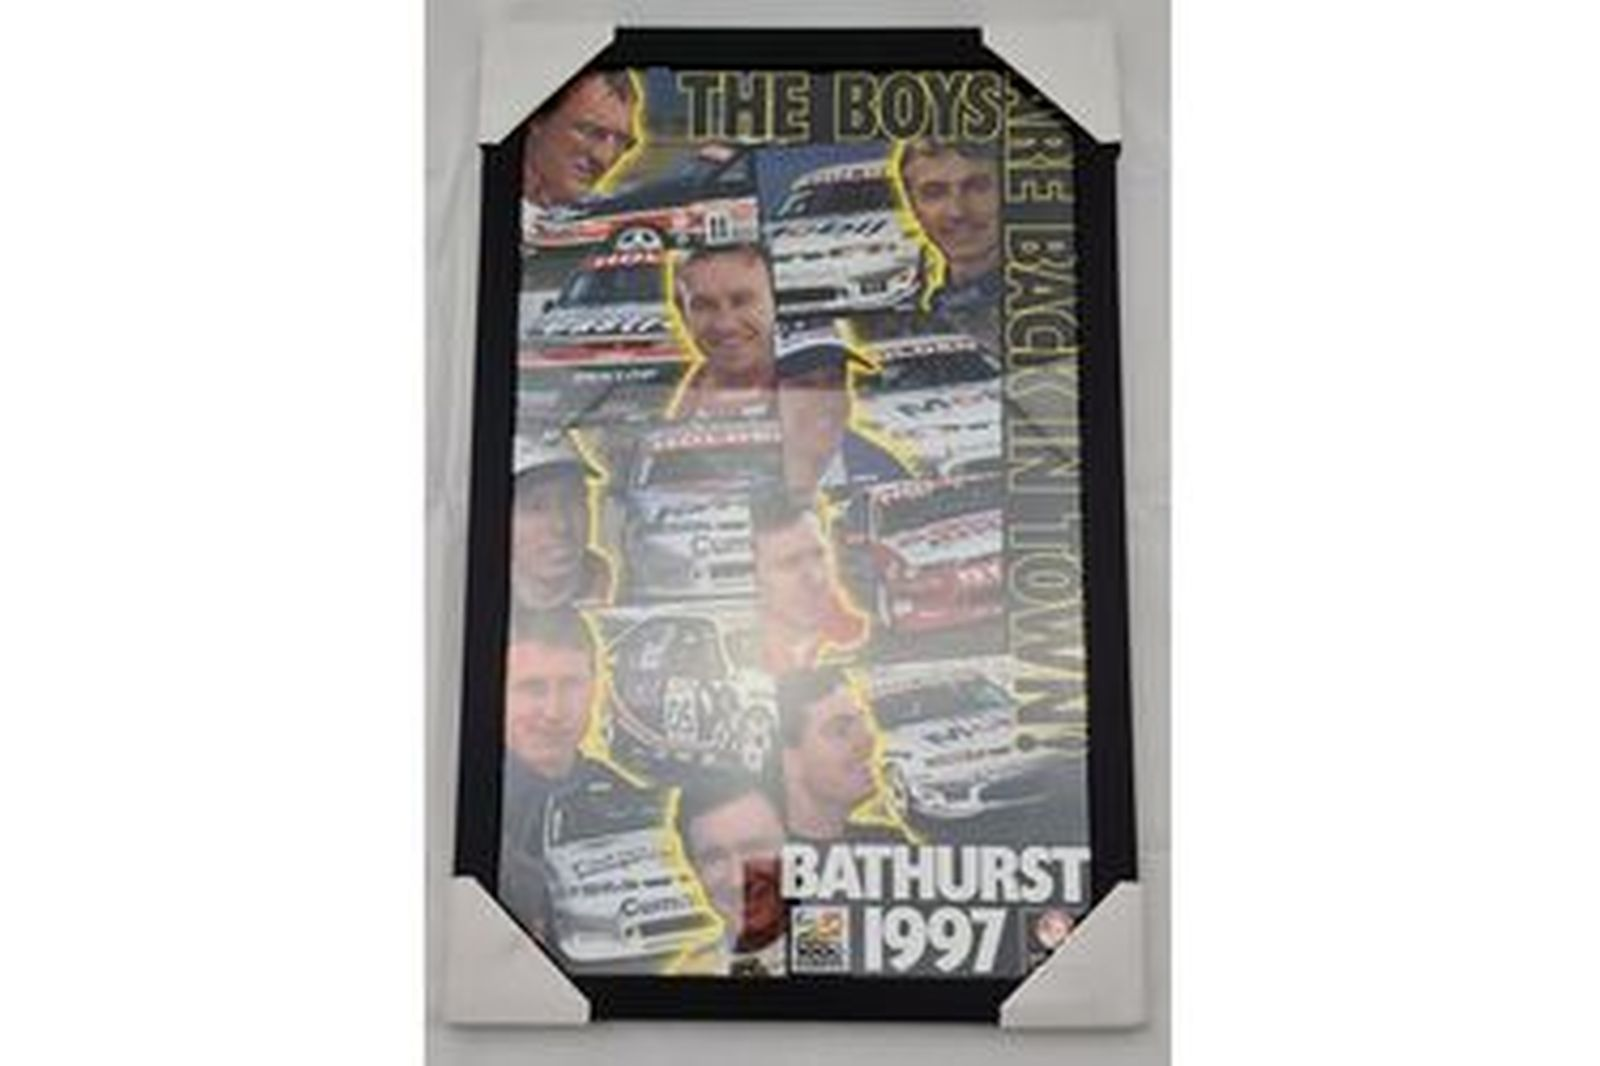 'The boys are back in town' Bathurst 1997 Framed Poster (470W x 730H)